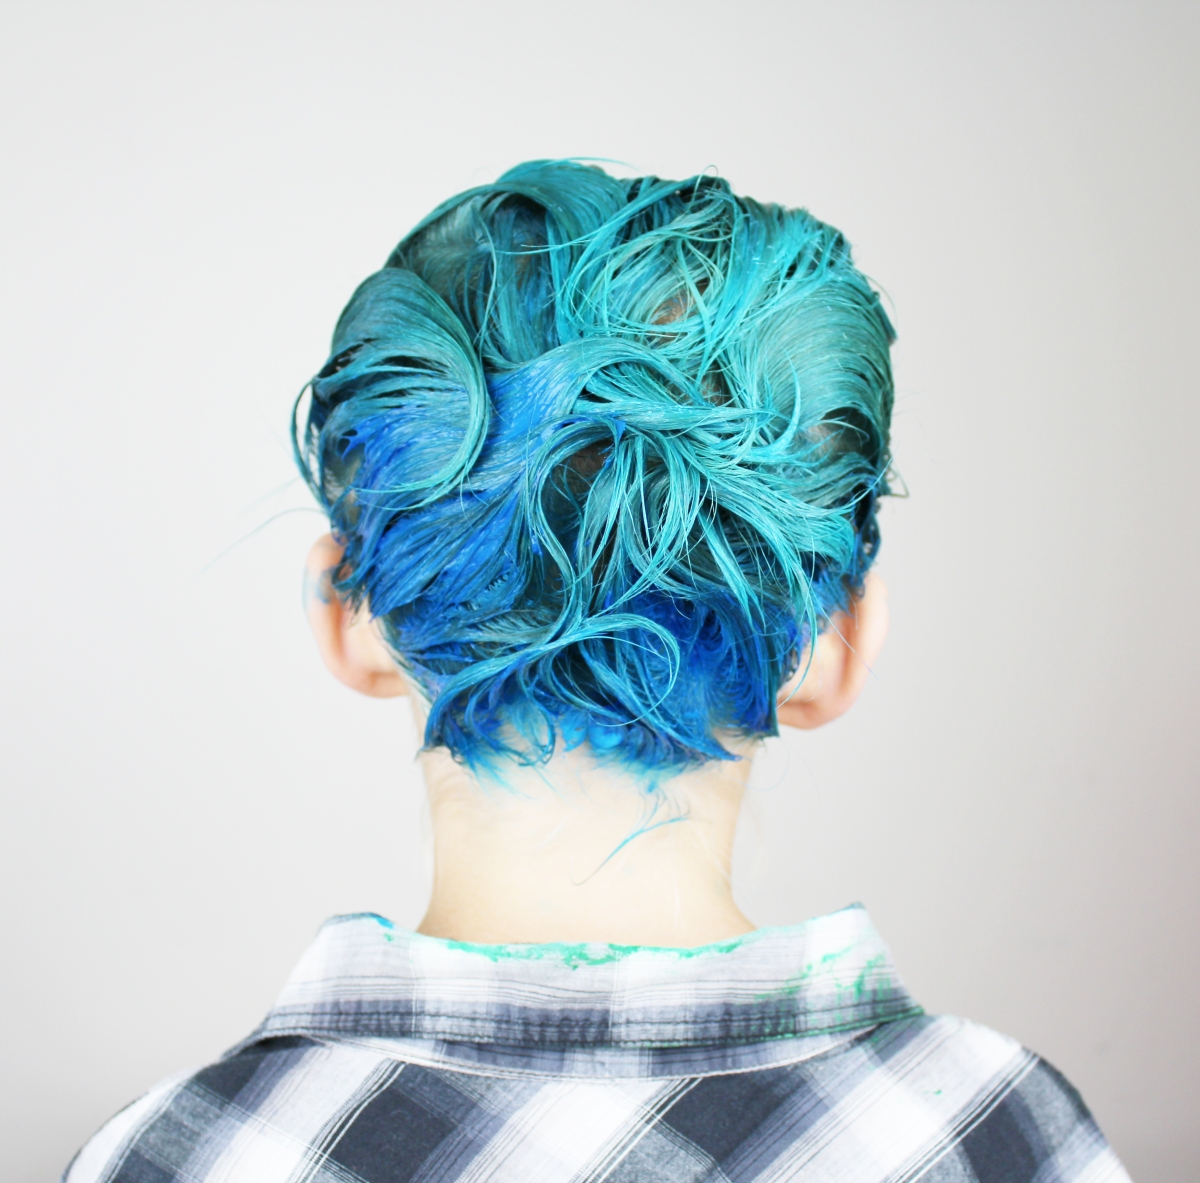 Why I let my son dye his hair blue